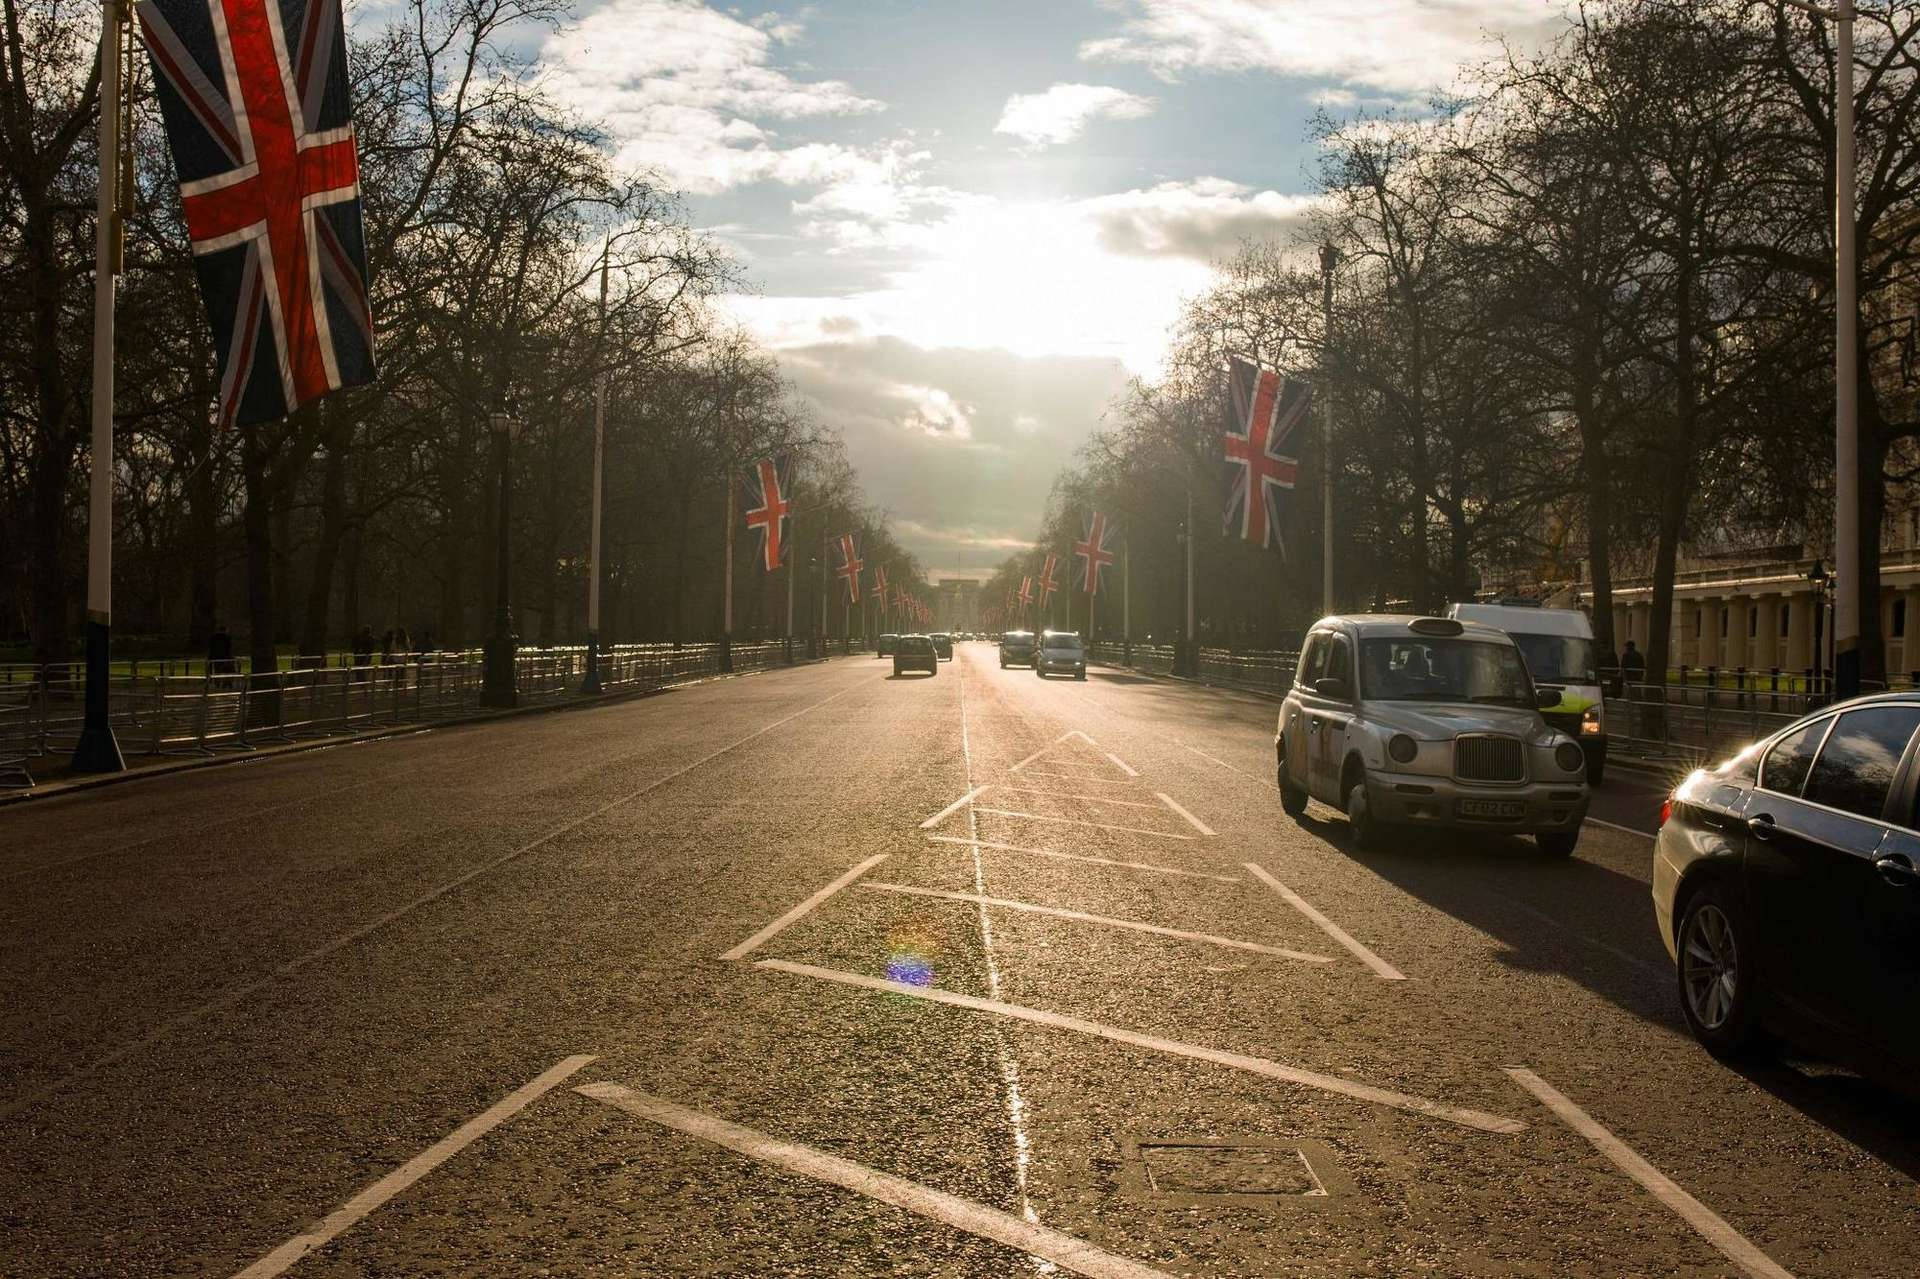 London street with taxi and flags